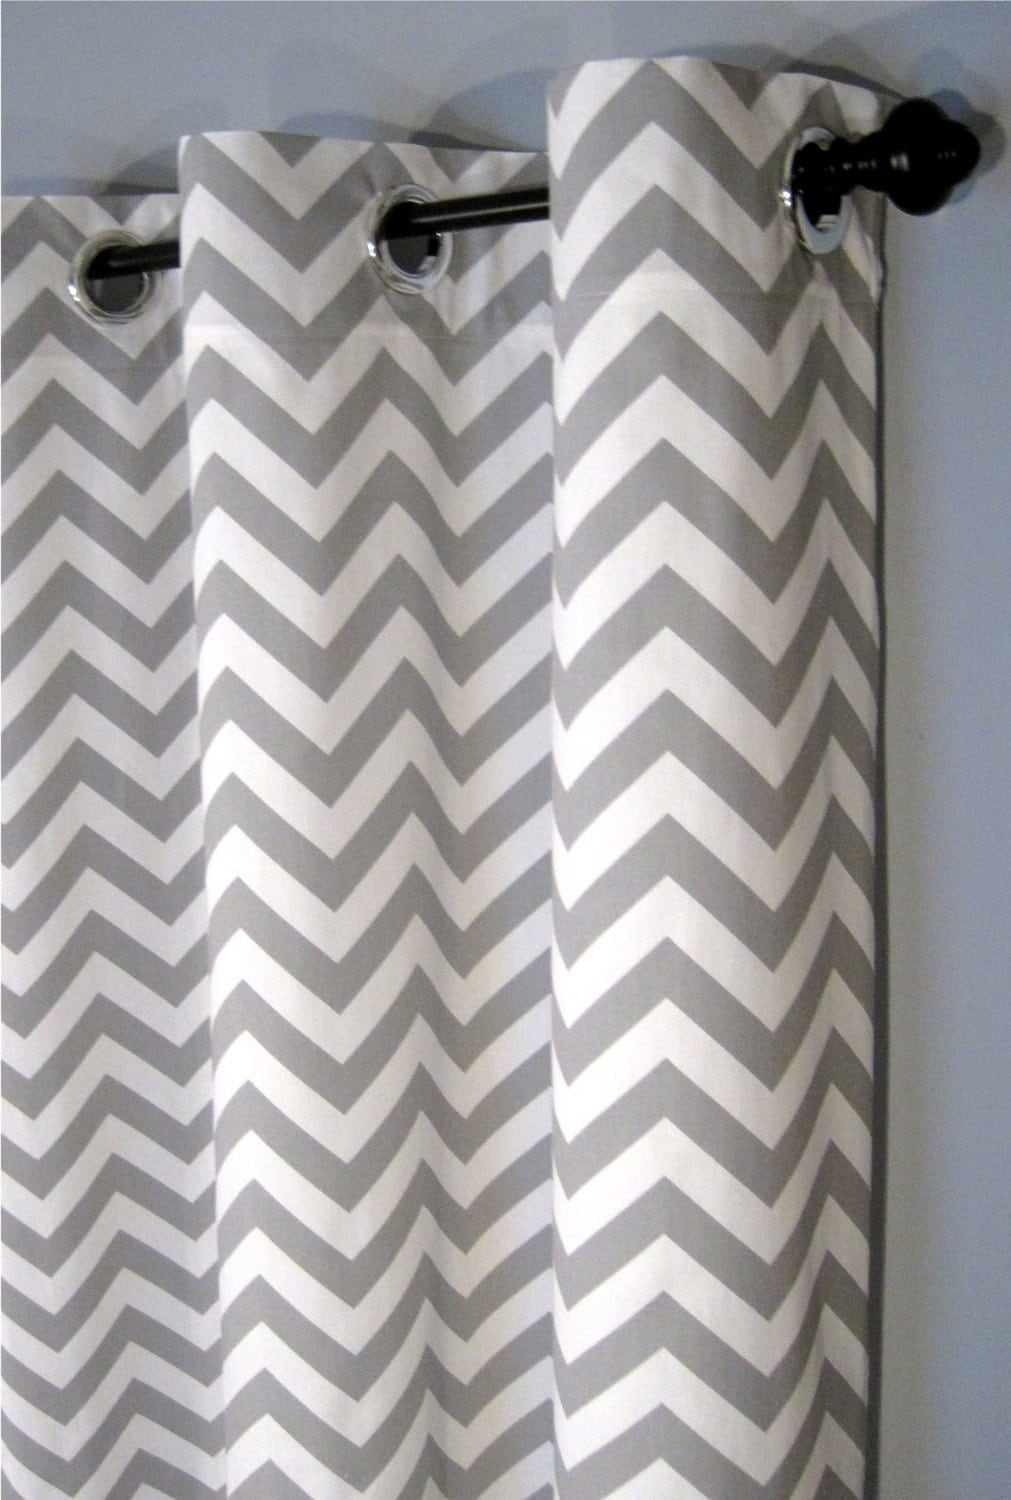 Designer Shower Curtains With Valance Aqua Chevron Shower Curtain